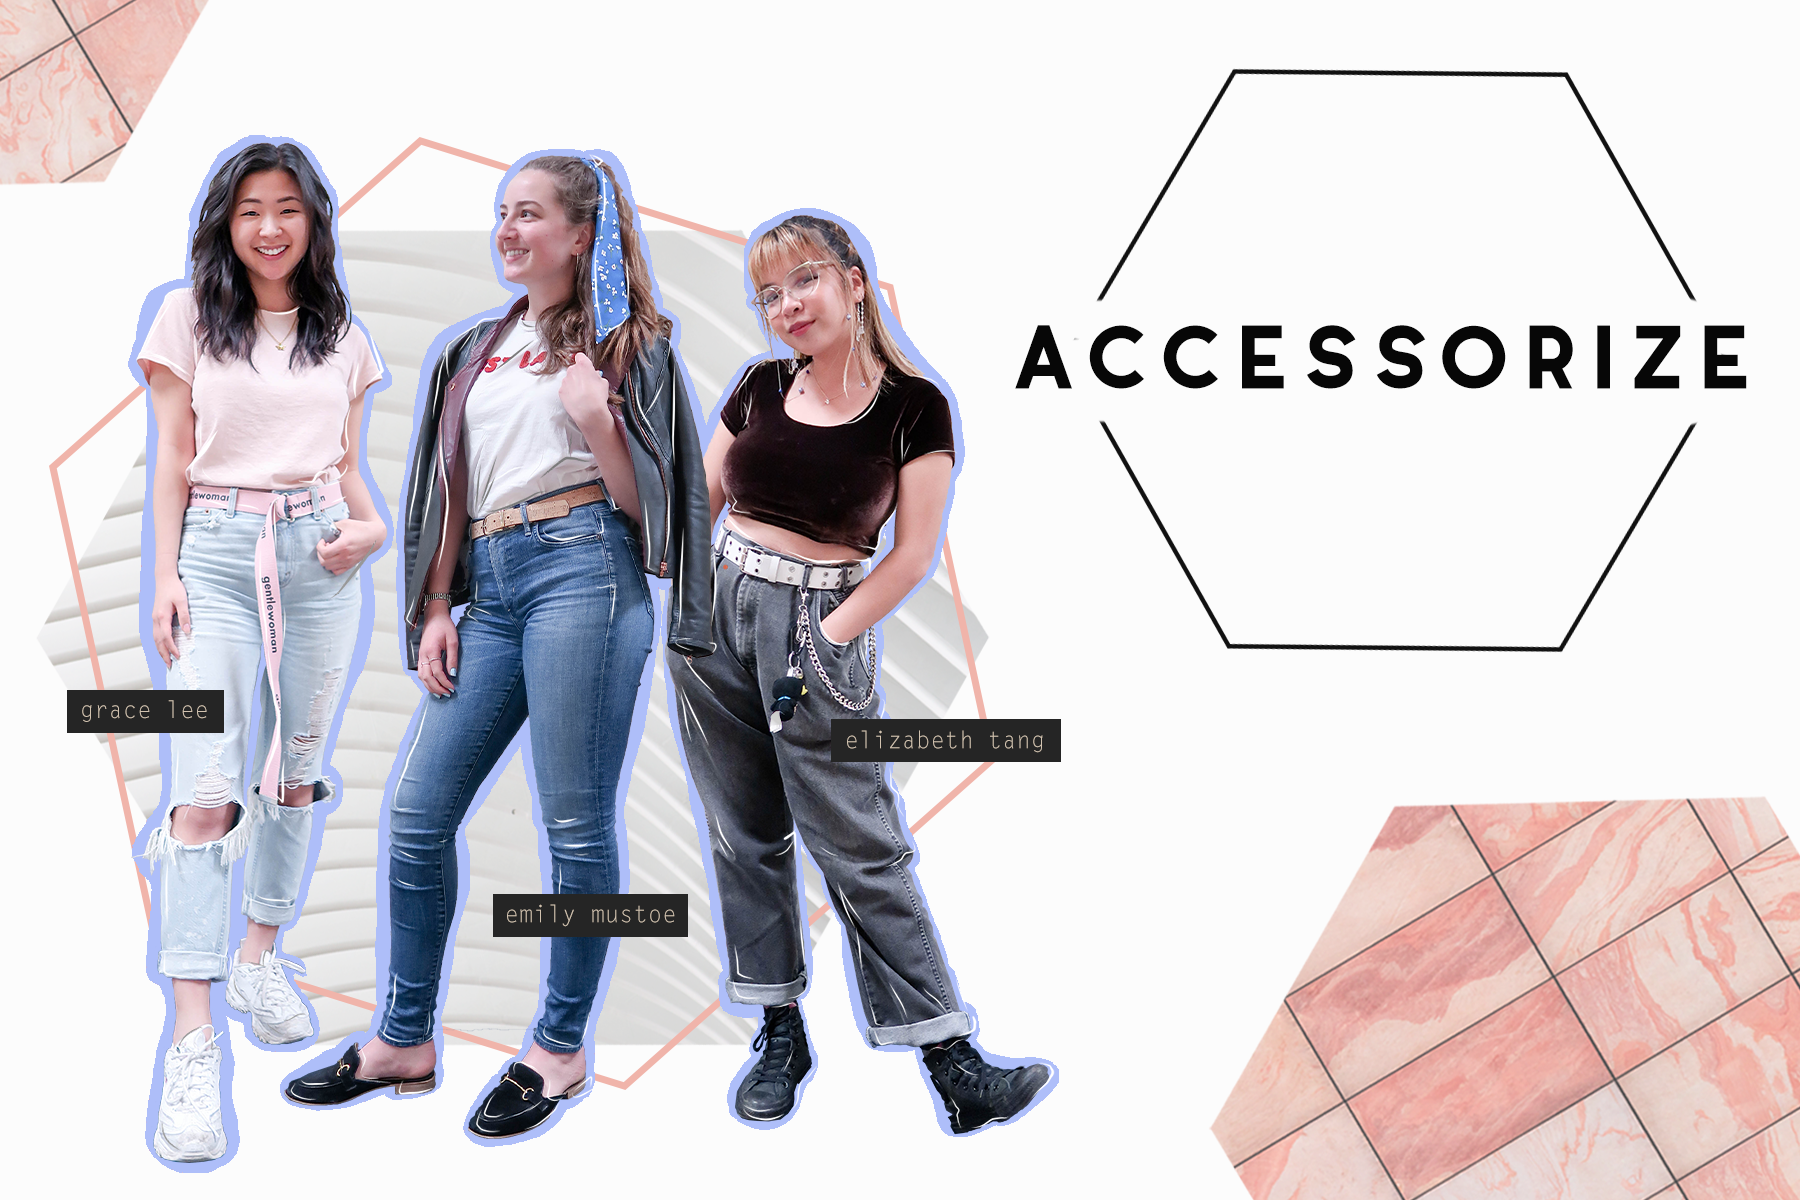 accessorize 1.png